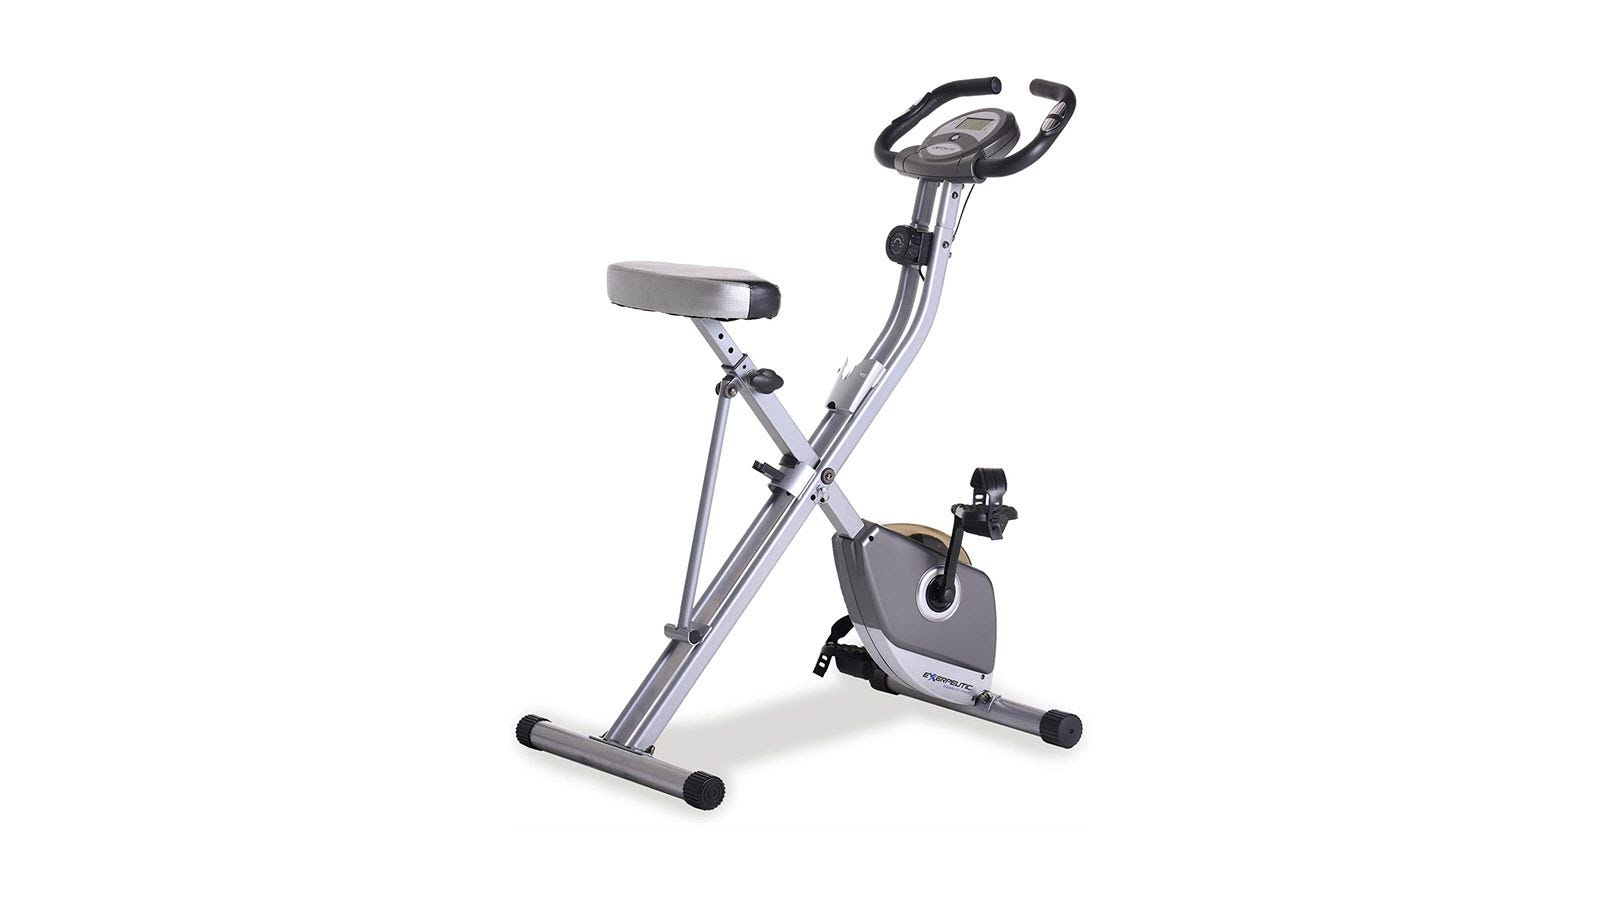 The Exerpeutic Folding Magnetic Exercise Bike.